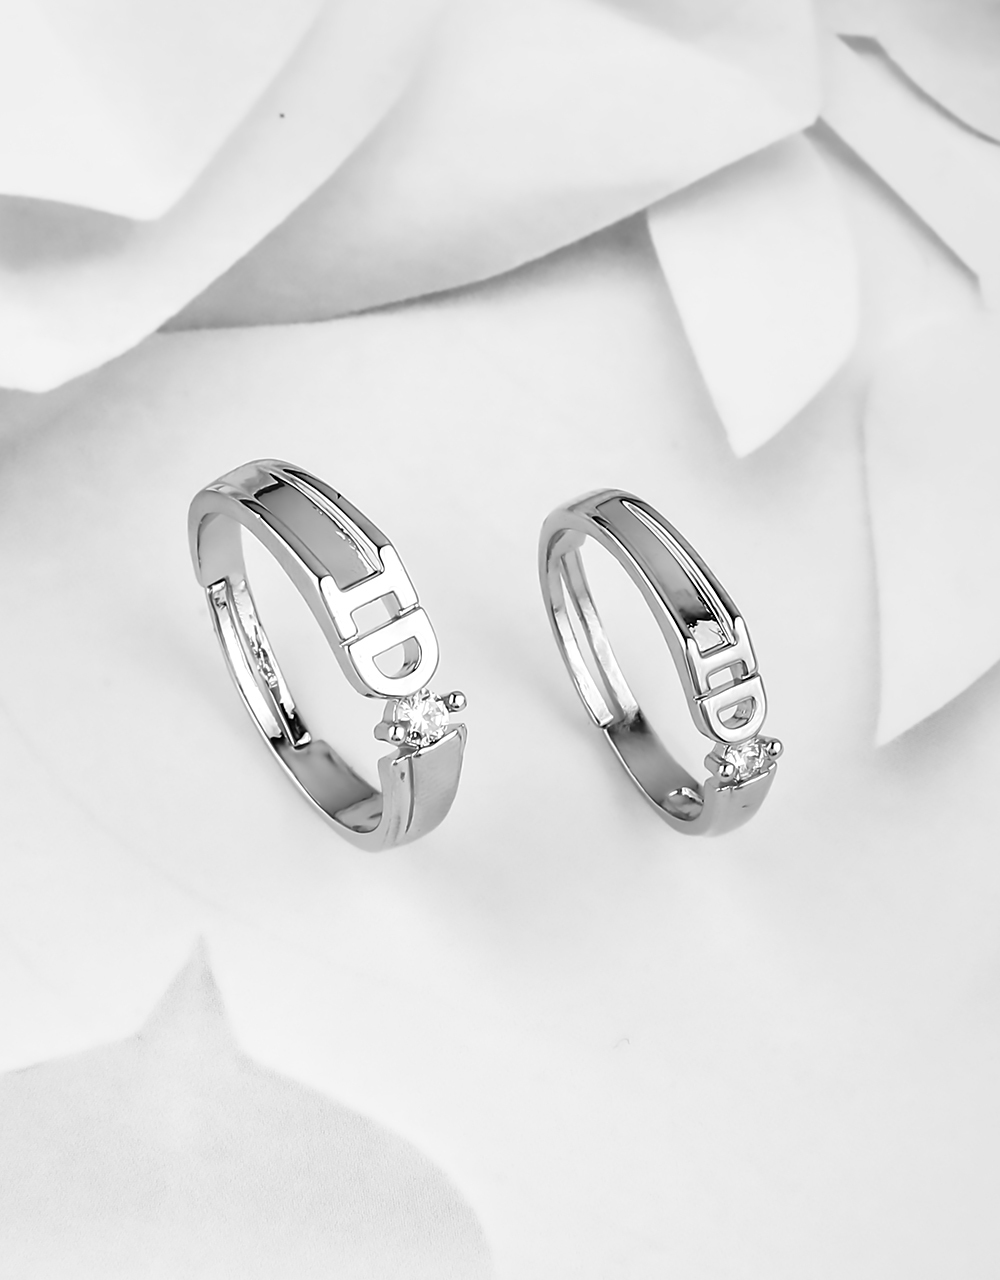 Silver Polish Appealing Stainless Steel Rings for Couples